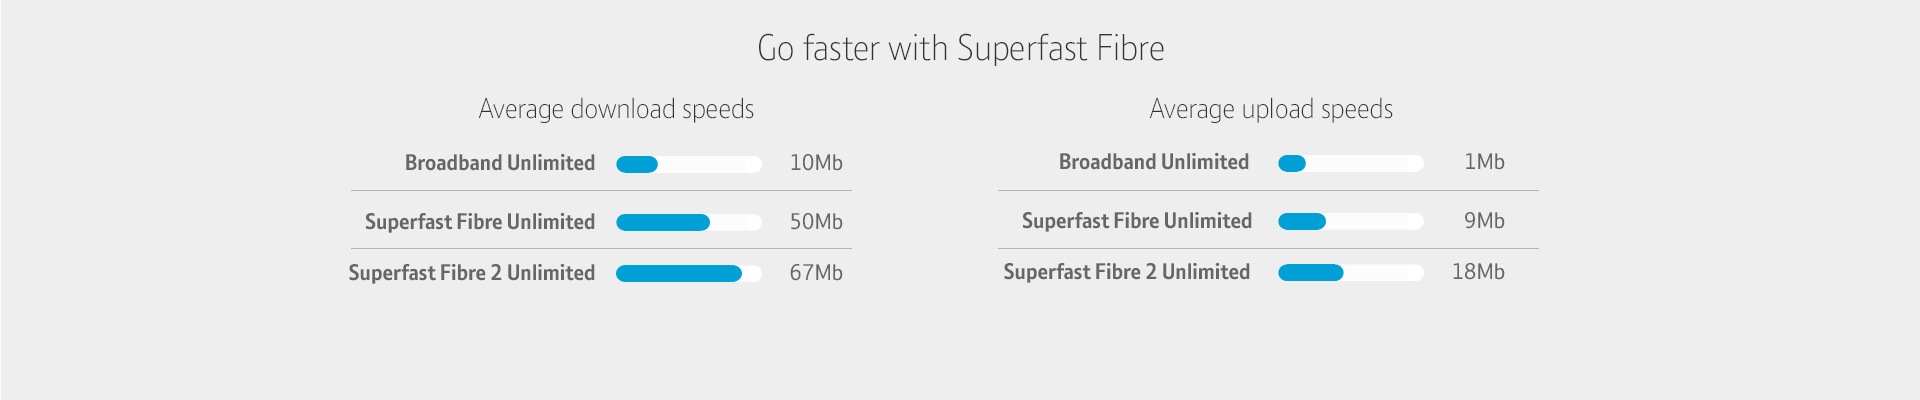 Go faster with Superfast Fibre - Average download speeds - Broadband Unlimited 10Mb, Superfast Fibre Unlimited 50Mb, Superfast Fibre 2 Unlimited 67Mb. Average upload speeds - Broadband Unlimited 1Mb, Superfast Fibre Unlimited 9Mb, Superfast Fibre 2 Unlimited 18Mb